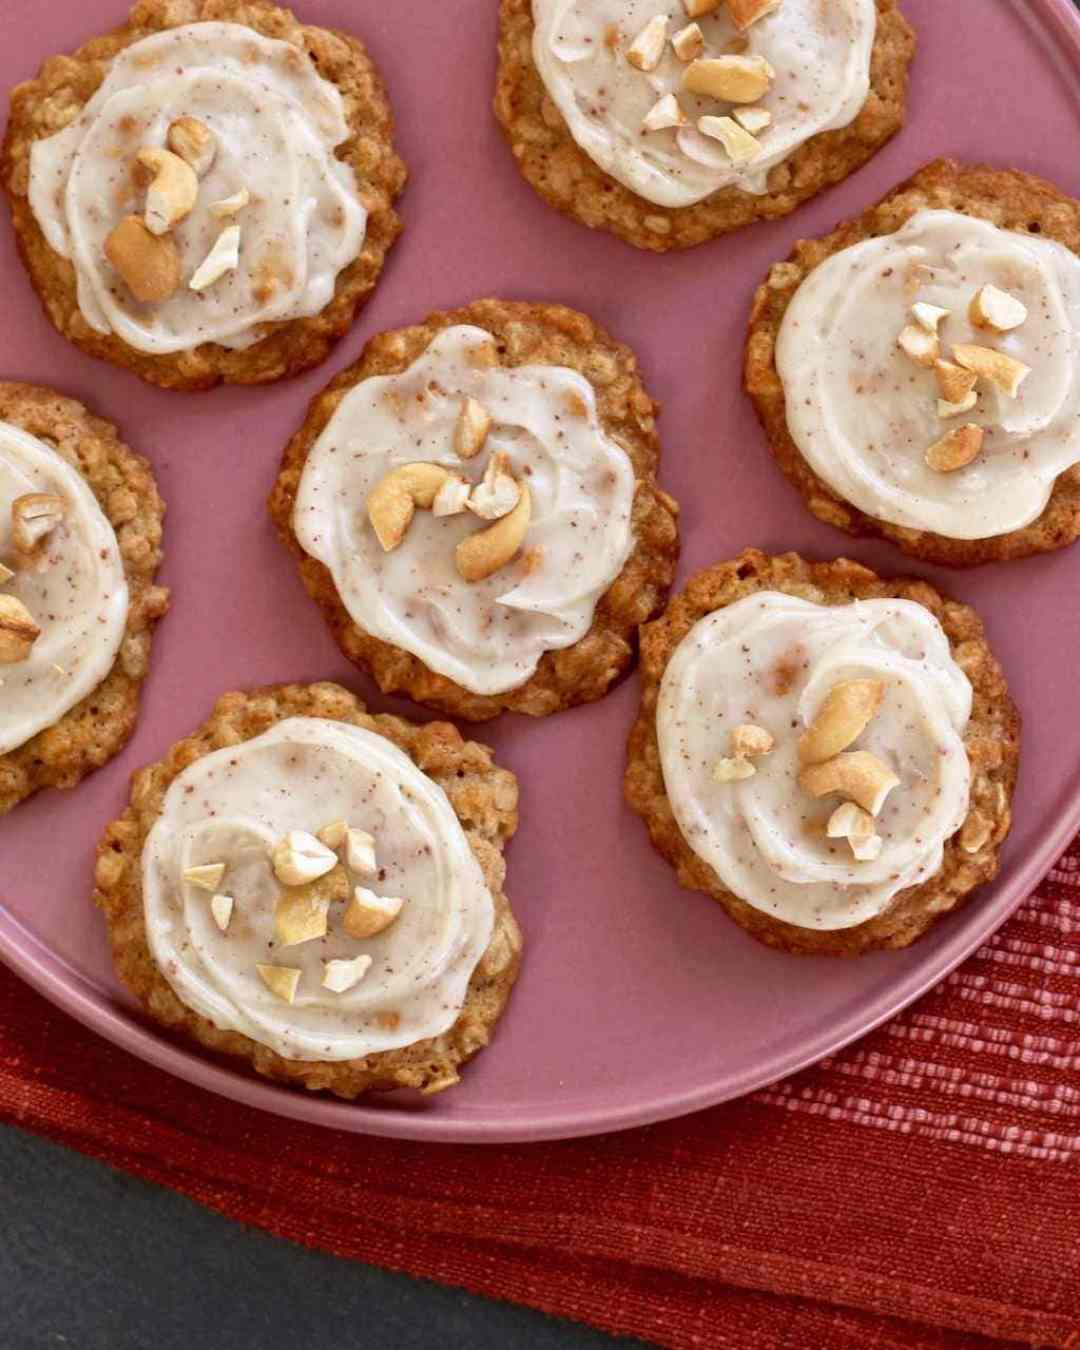 Cashew Cookies with Brown Butter Frosting overhead on a plate